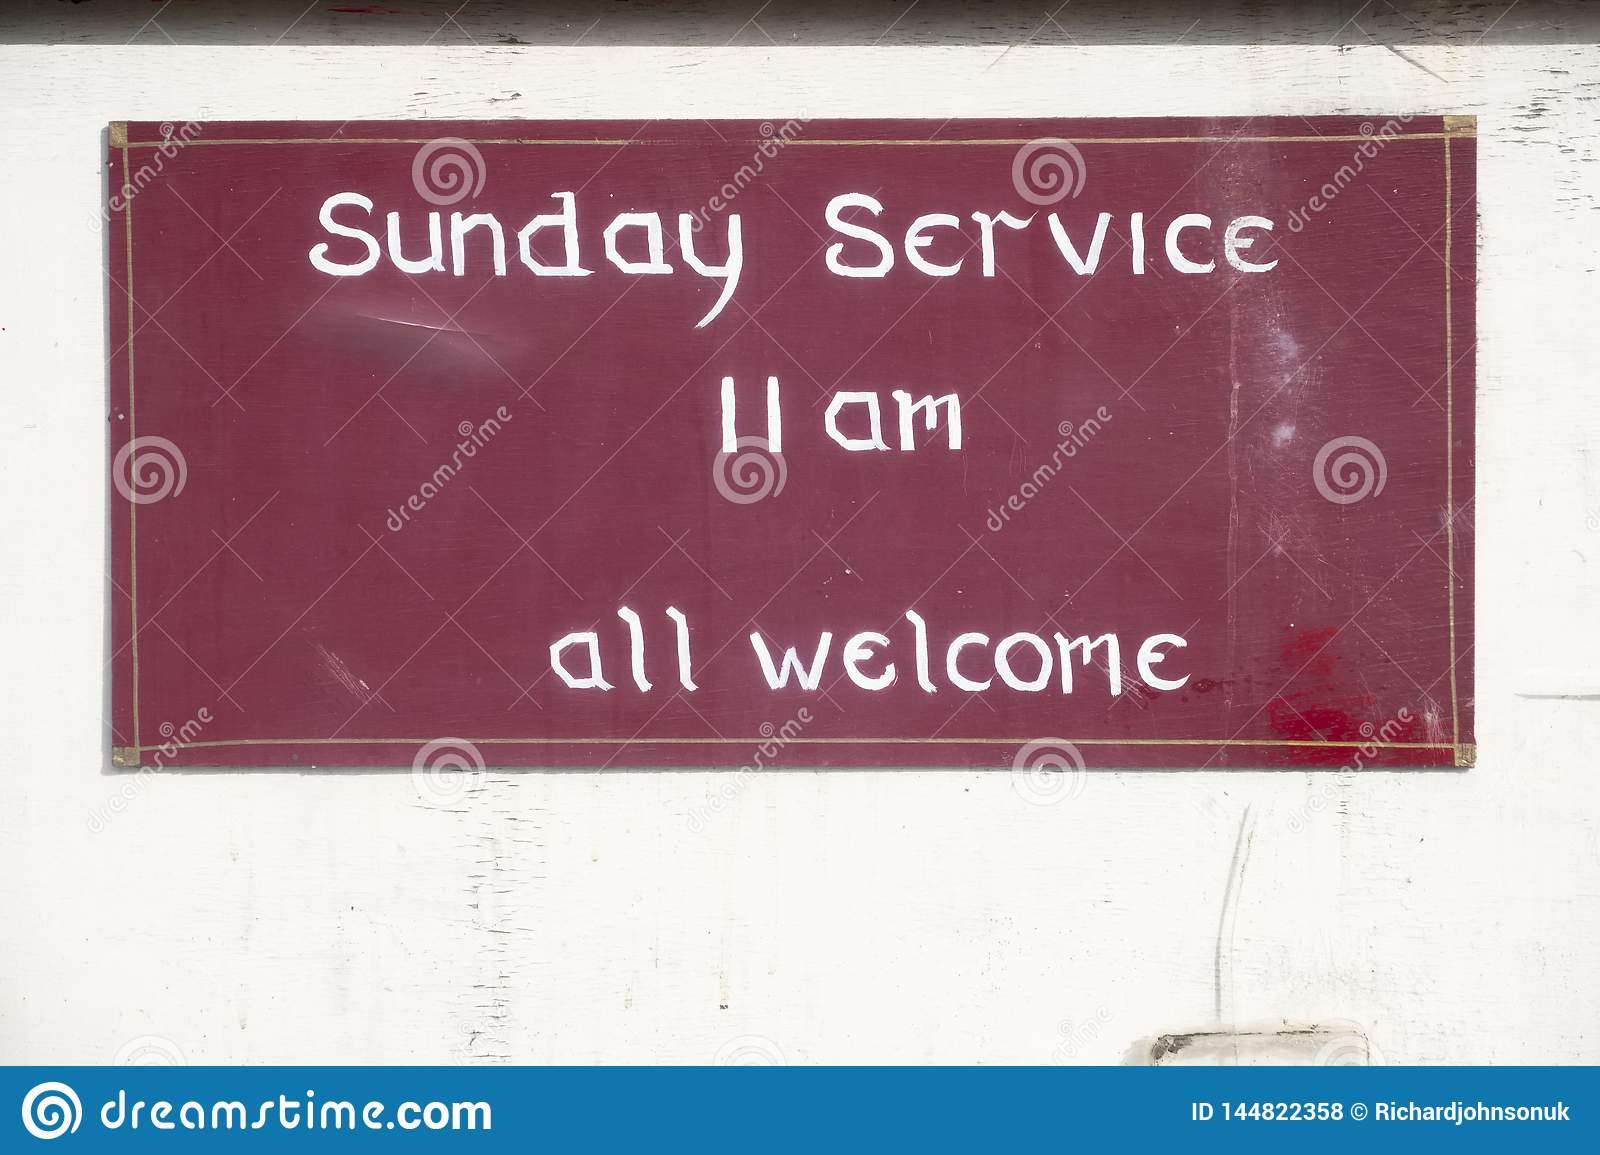 Sunday service all welcome sign at church for religious worship